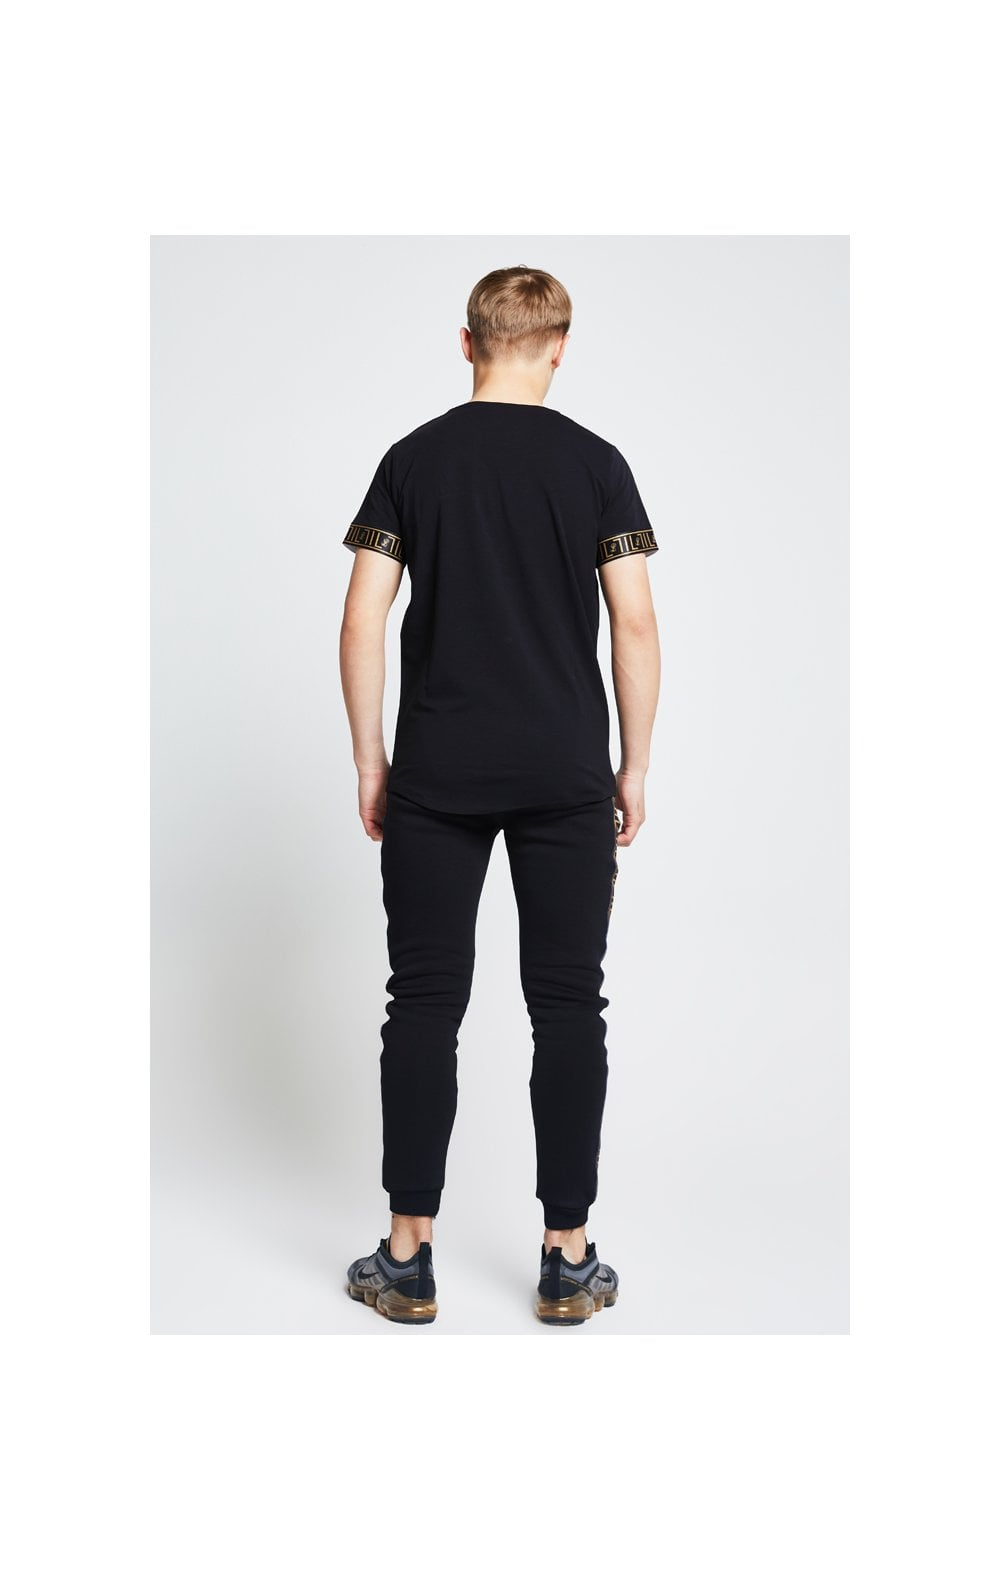 Load image into Gallery viewer, Illusive London Tech Tee - Black (4)